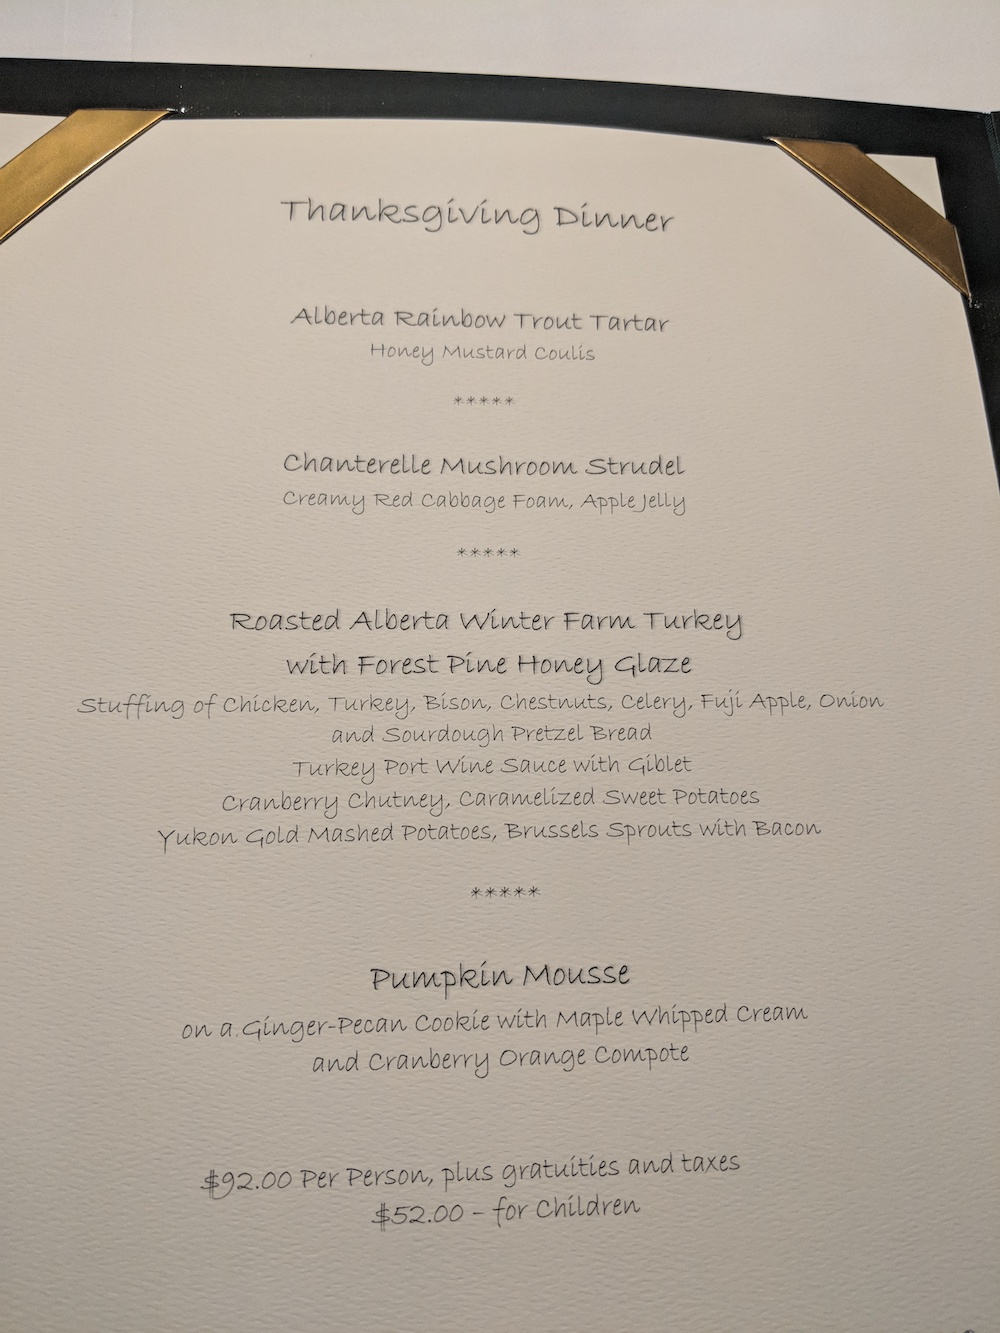 Thanksgiving Dinner Menu at the Post Hotel, Sunday October 7, 2018